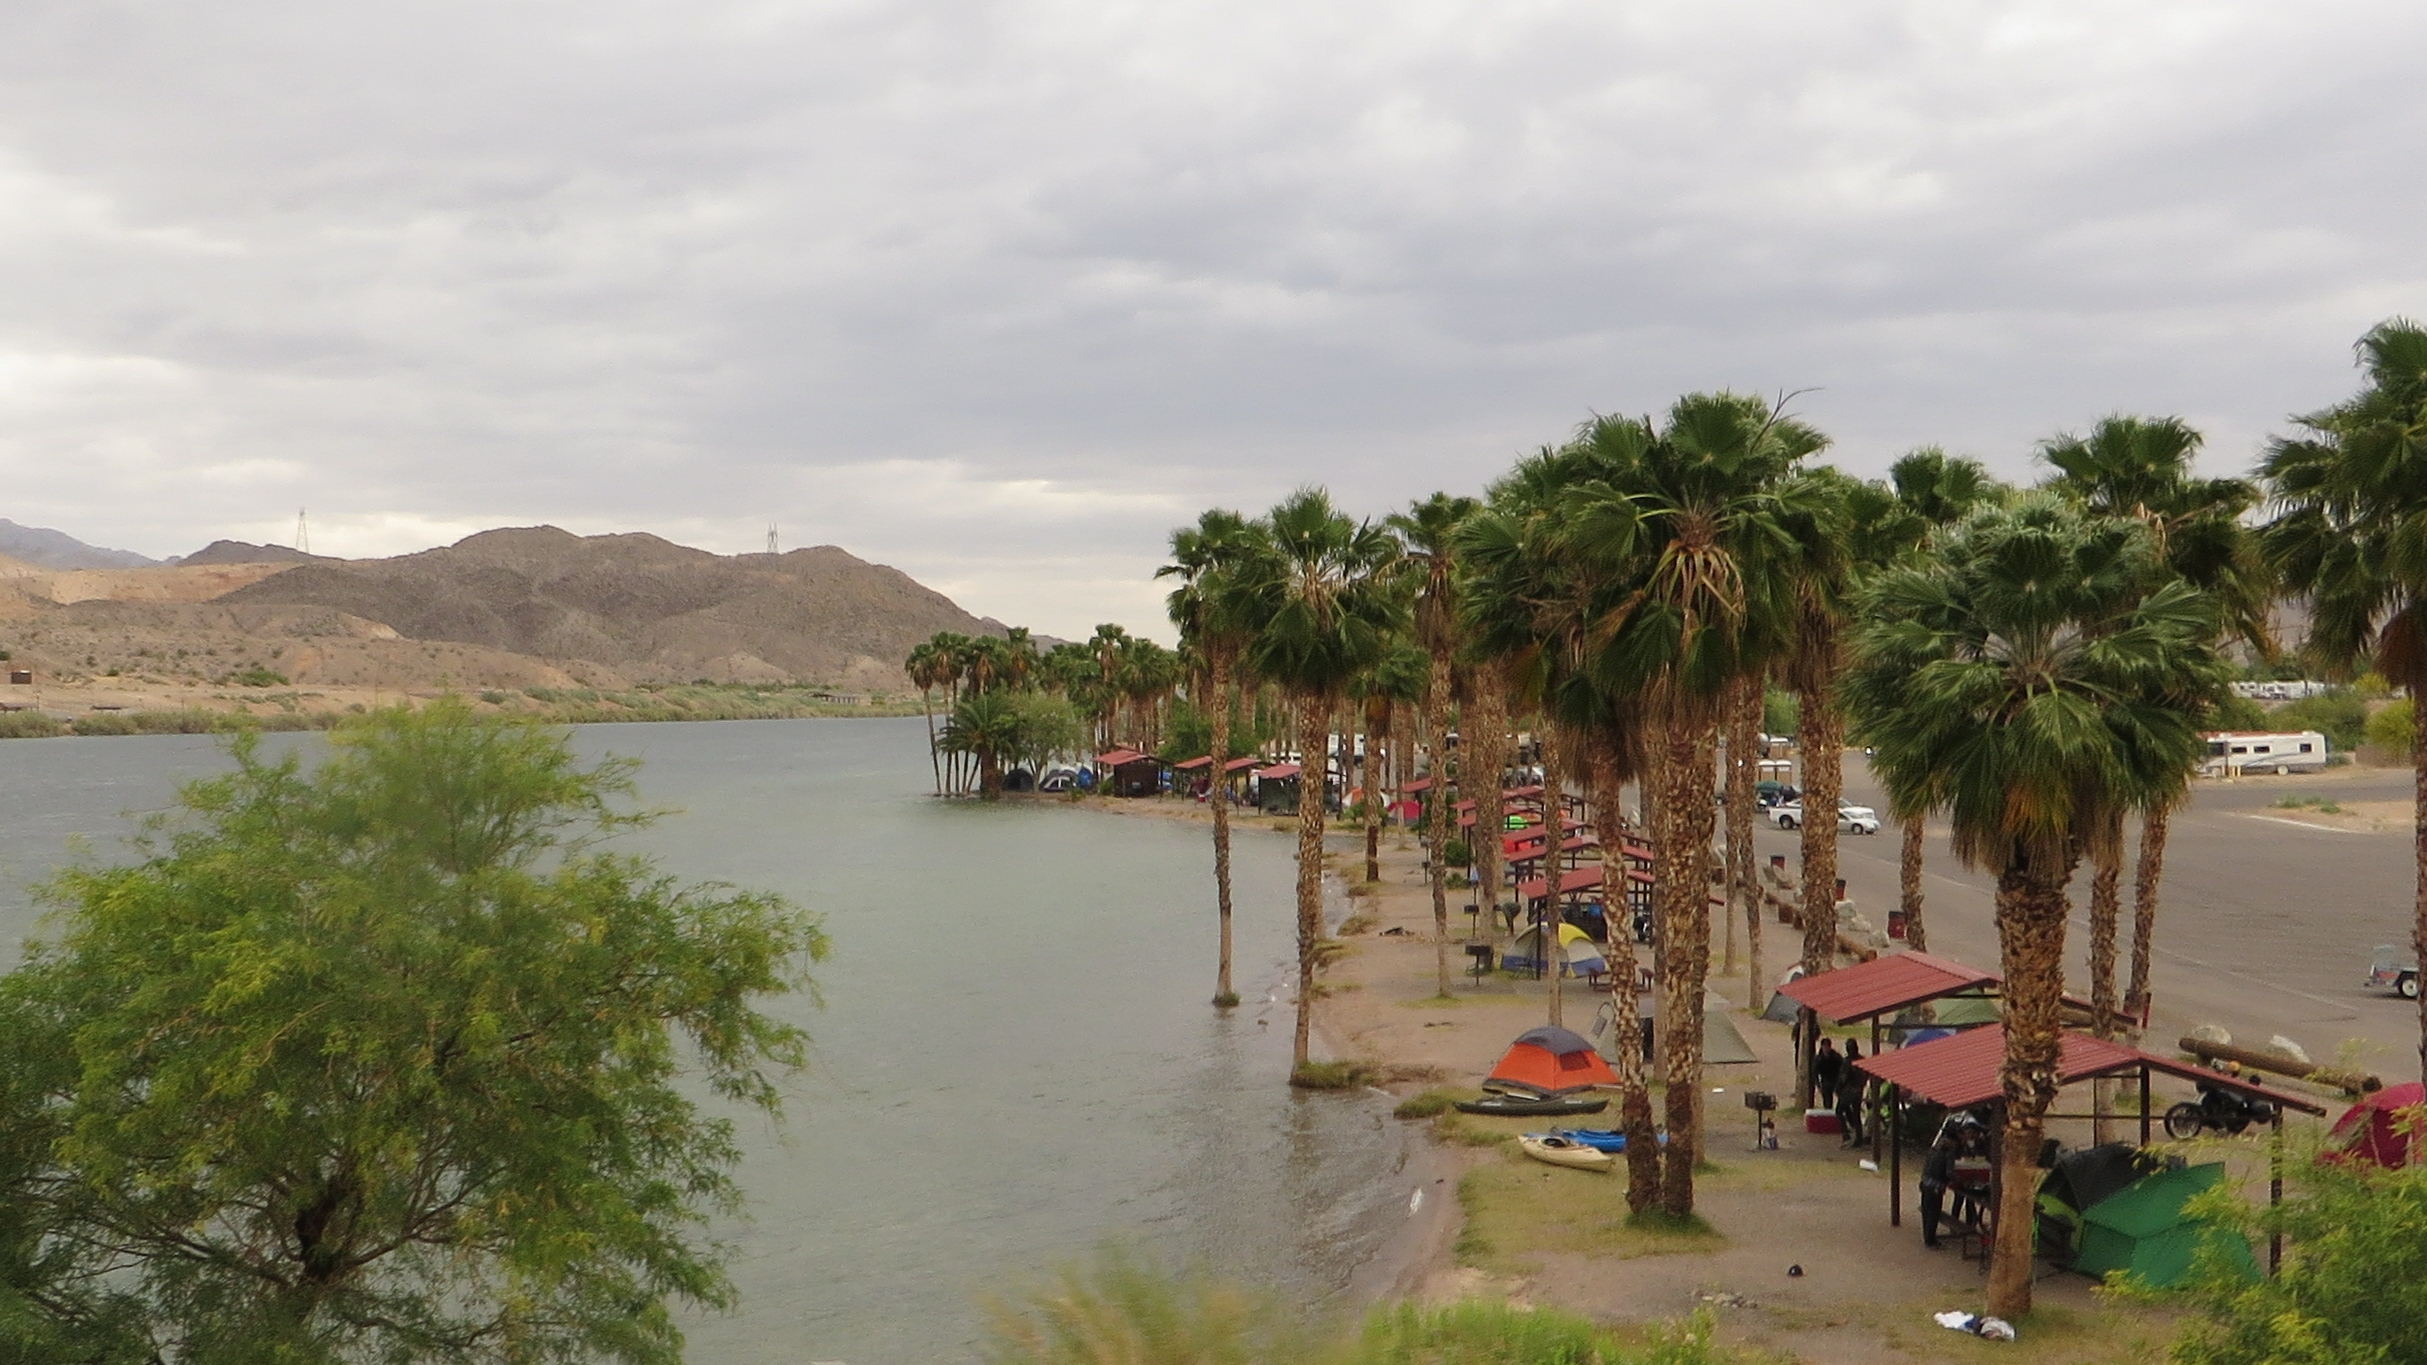 The Colorado River is seen at Bullhead City on April 25, 2015. (Ken Lund via Wikimedia Commons)